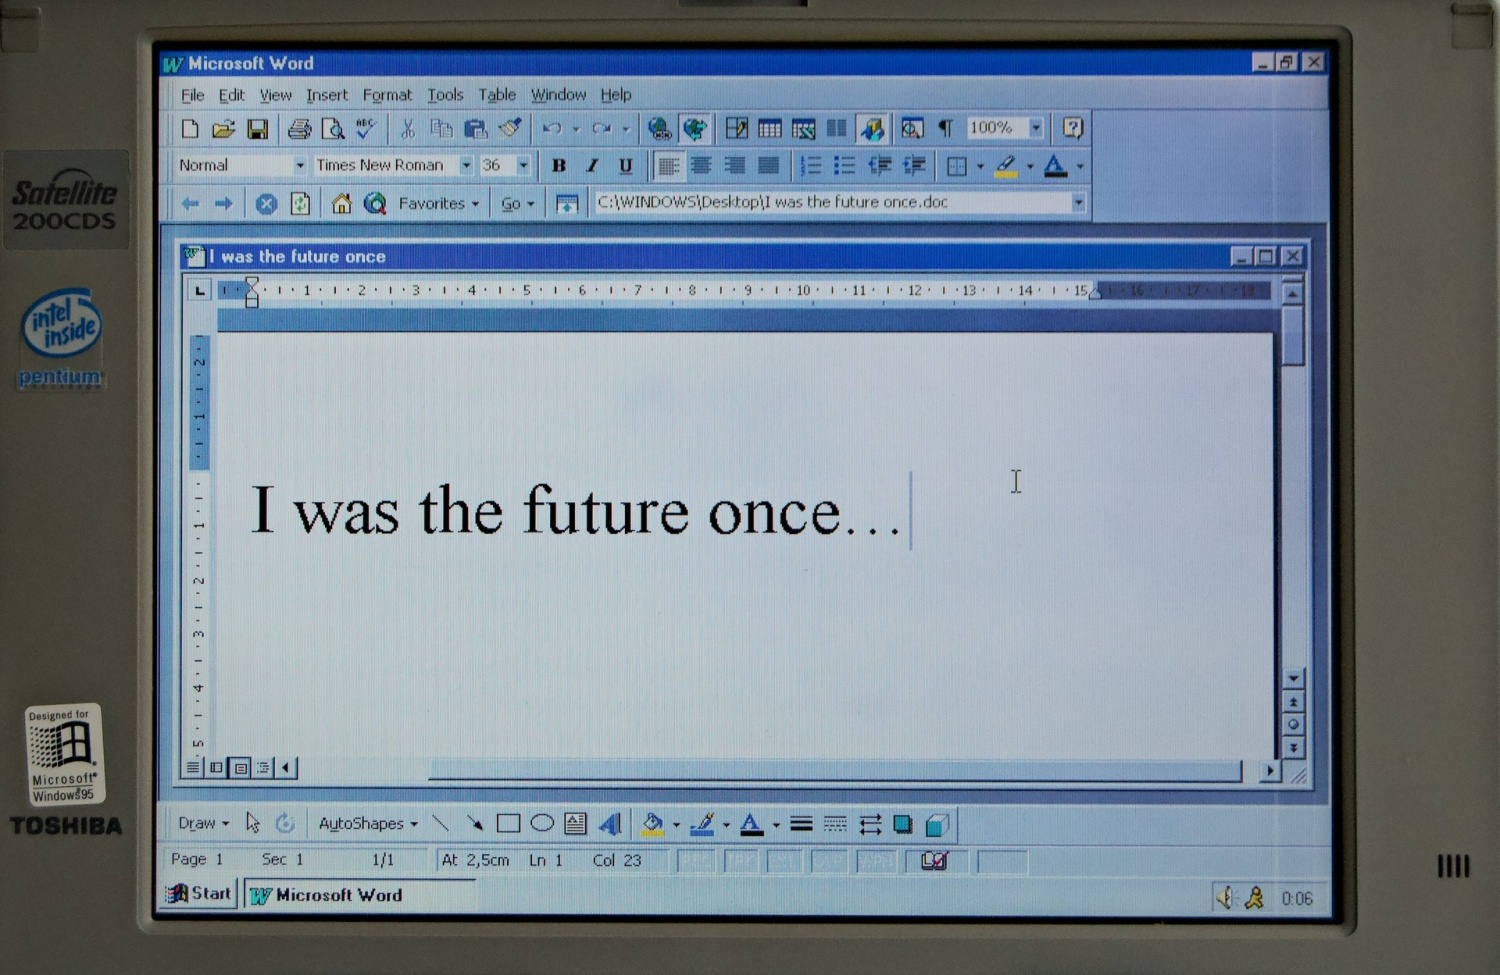 Alternatives to Microsoft Word: Are They Good Enough?